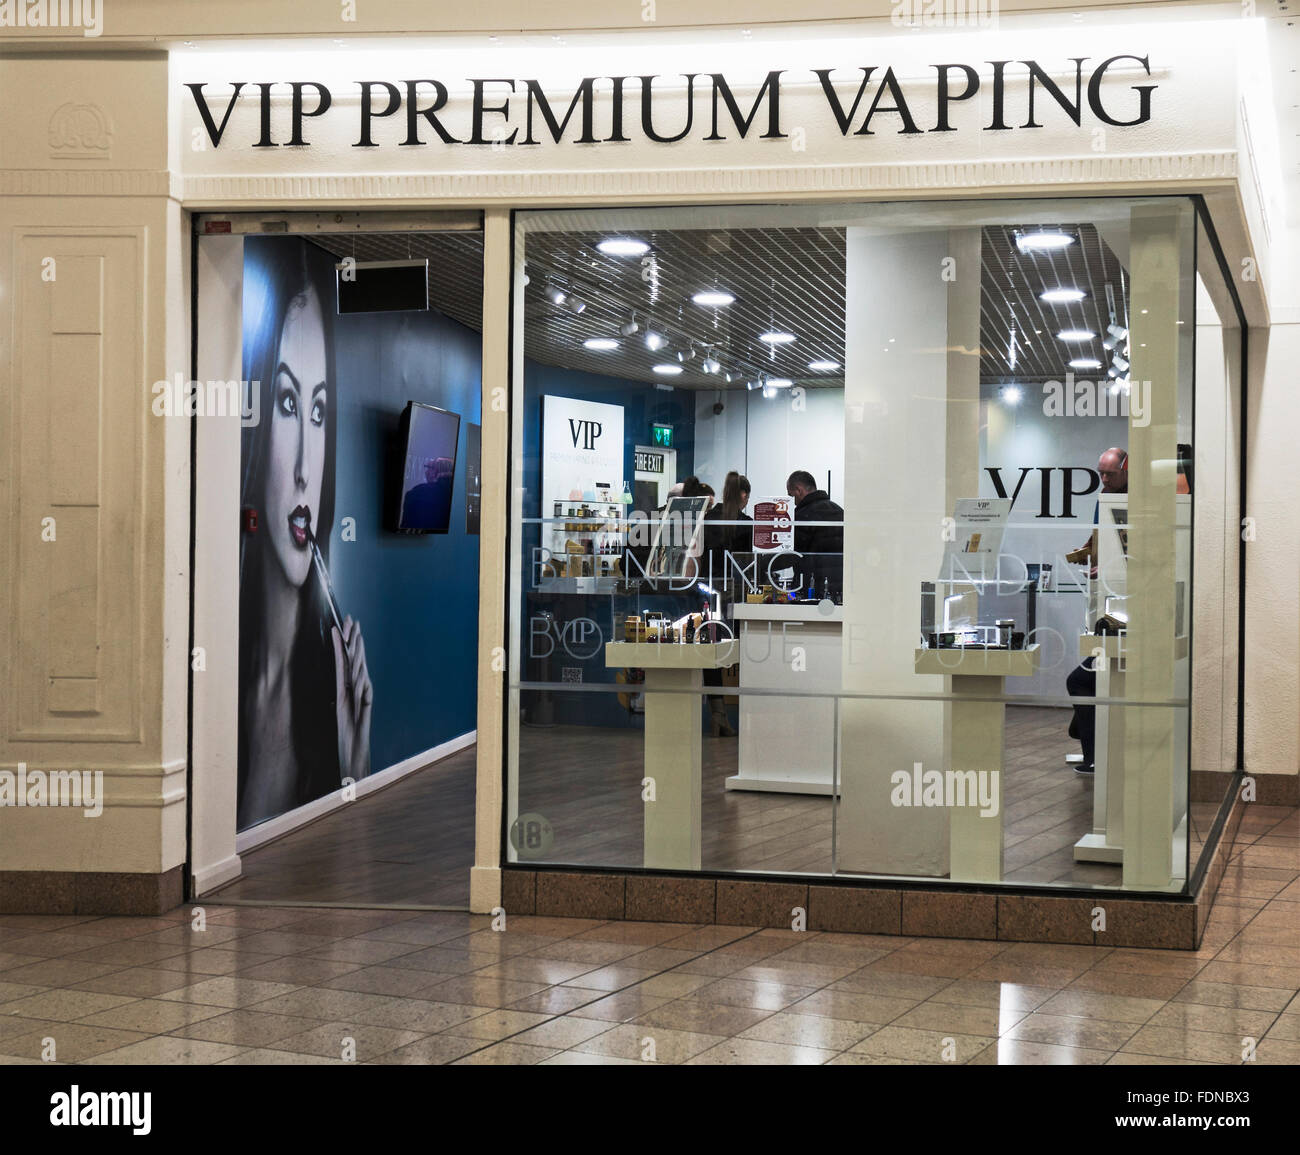 Shop selling vaping products - Stock Image